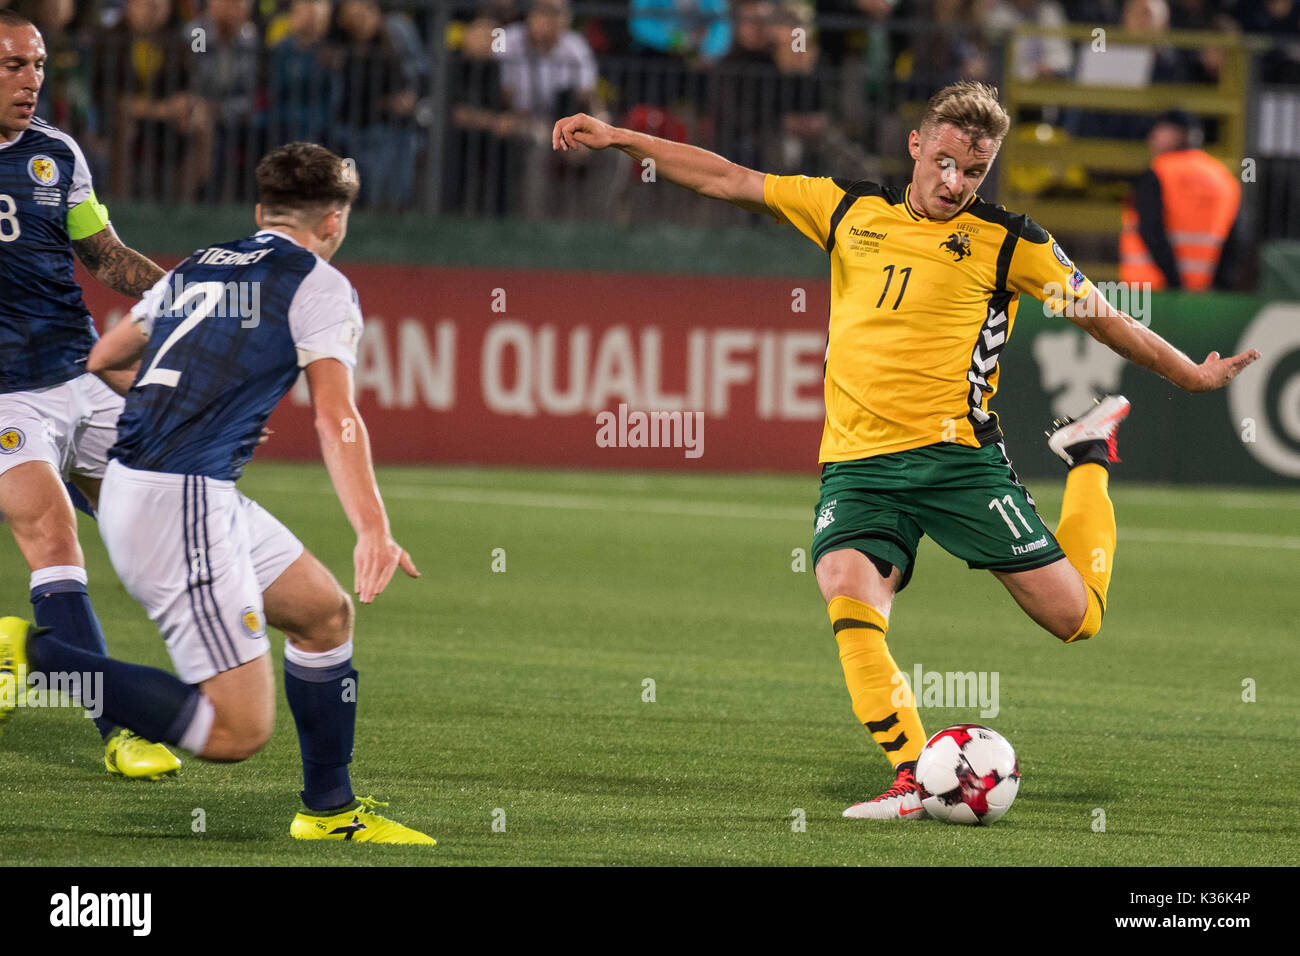 1st Sep 2017 Arvydas Novikovas R Of Lithuania Competes During The Fifa World Cup European Qualifying Group F Match Between And Scotland At Lff